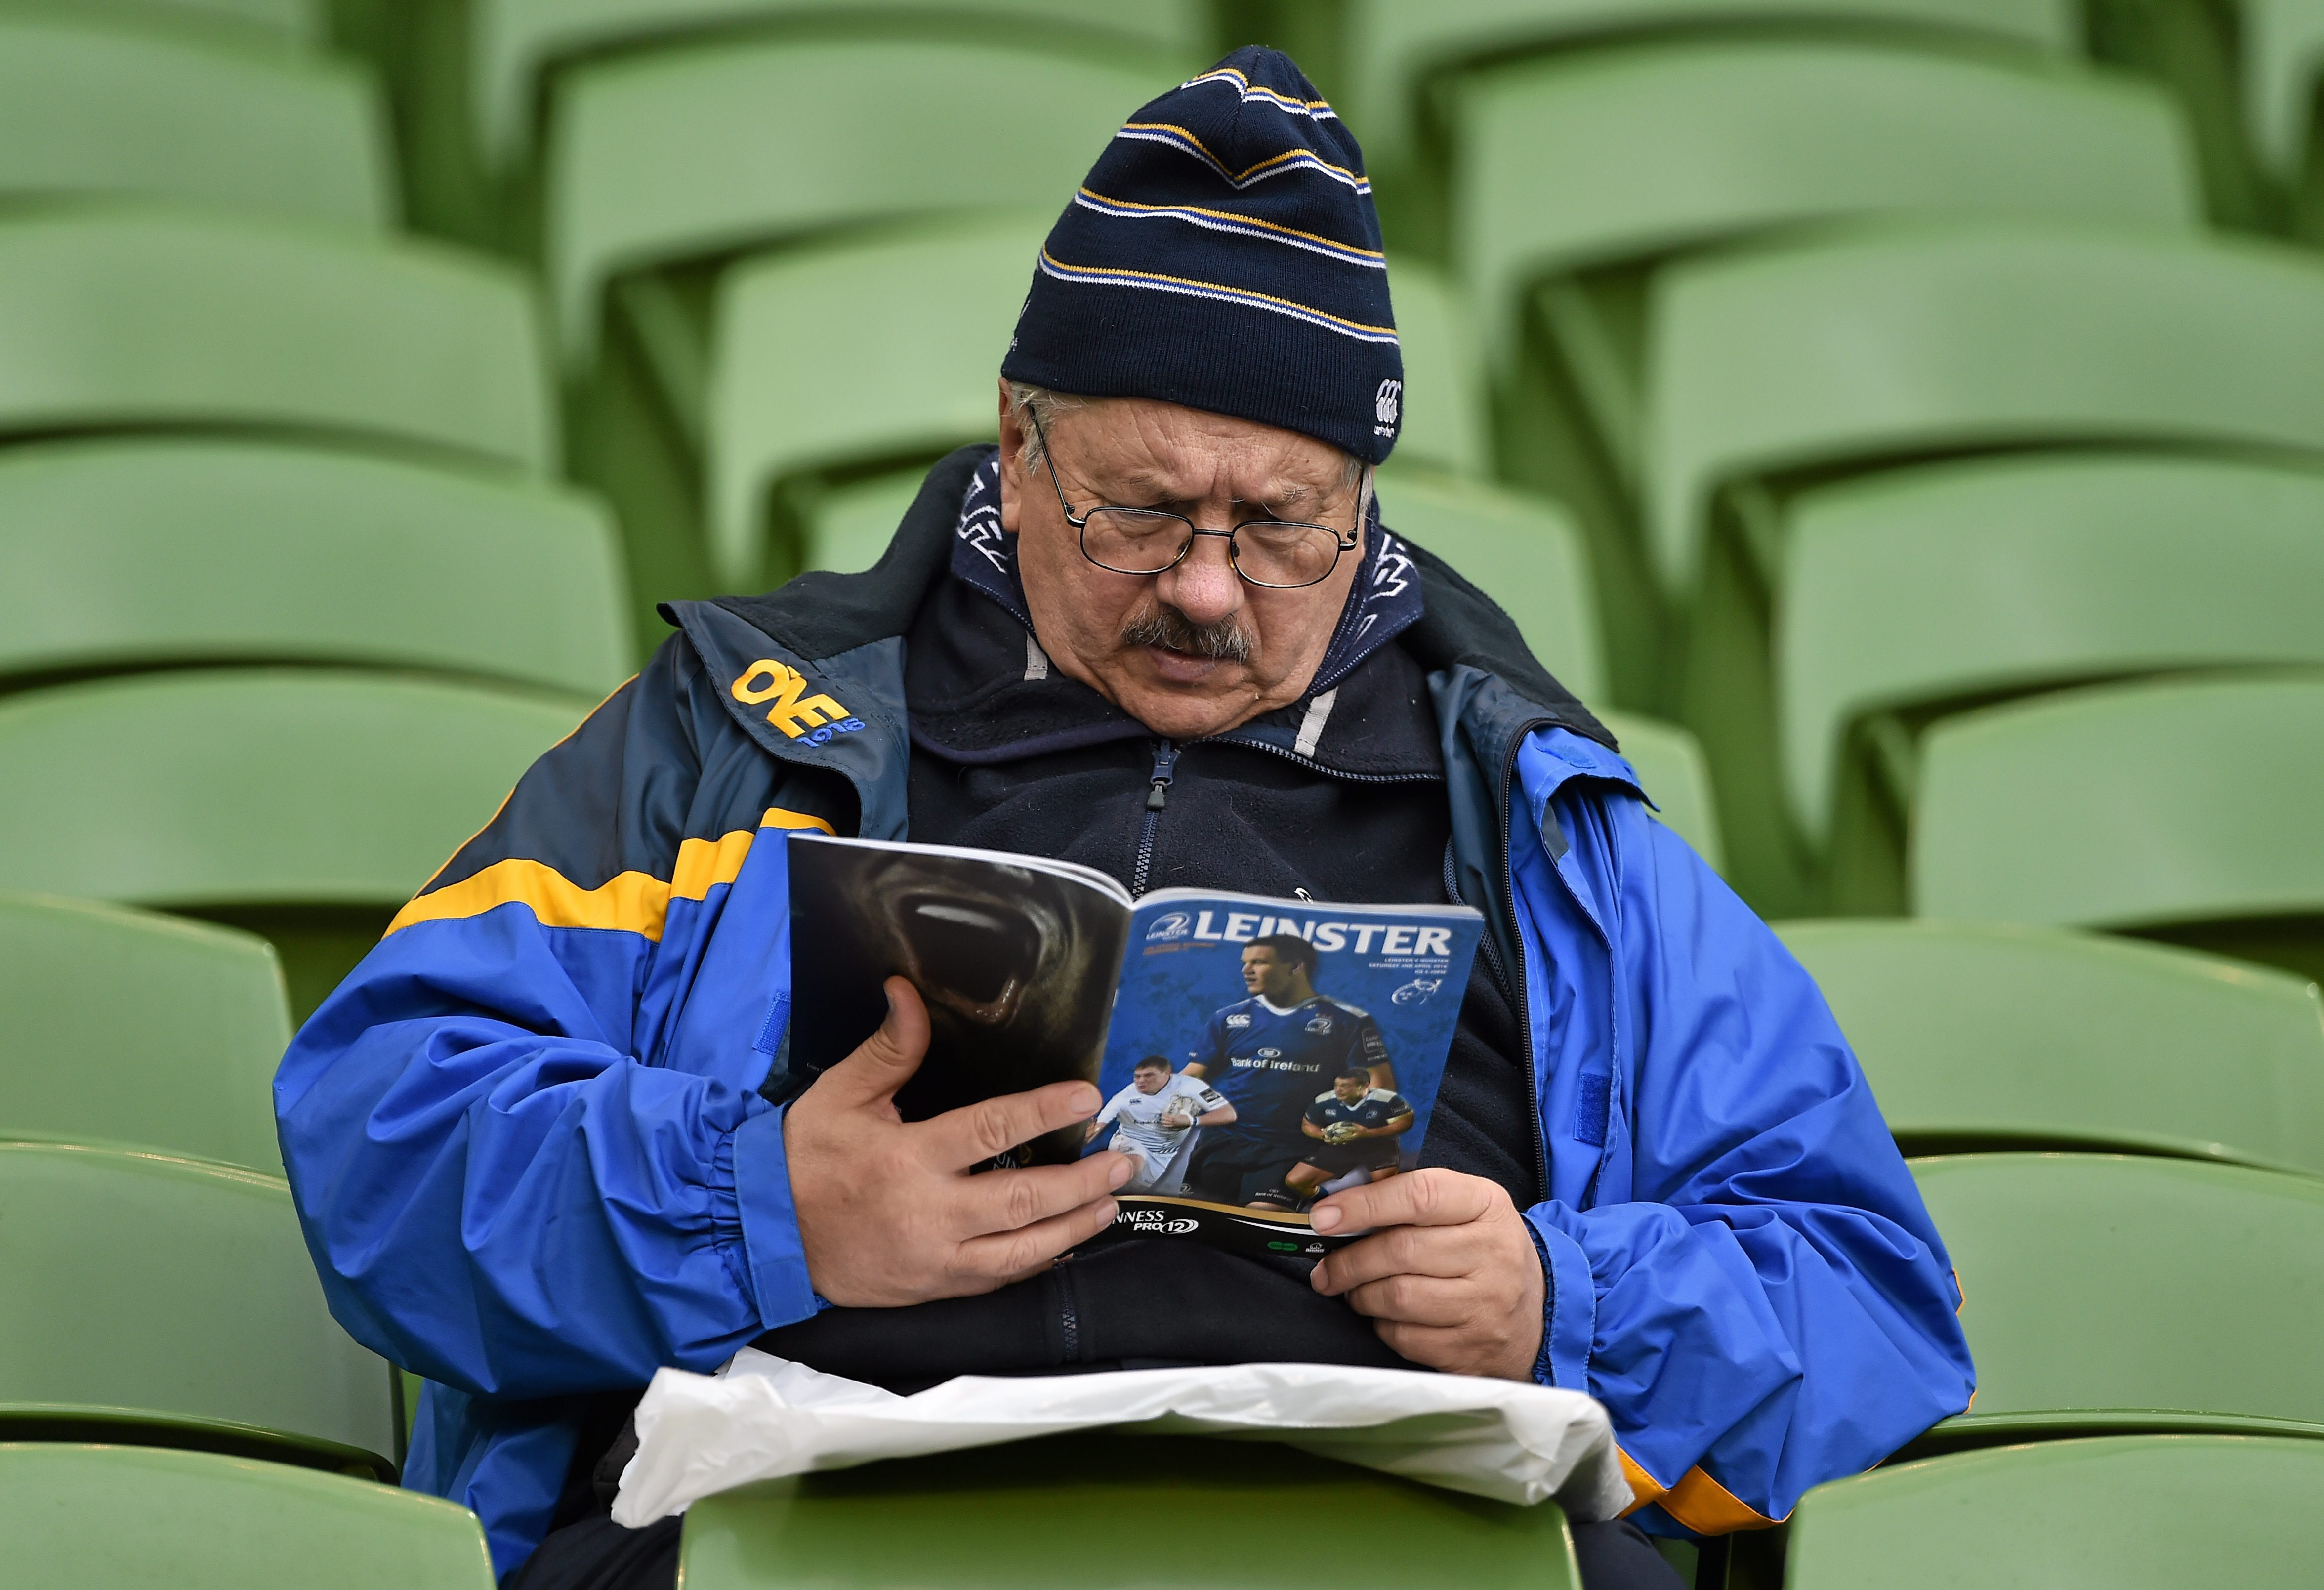 Leinster Rugby match programme